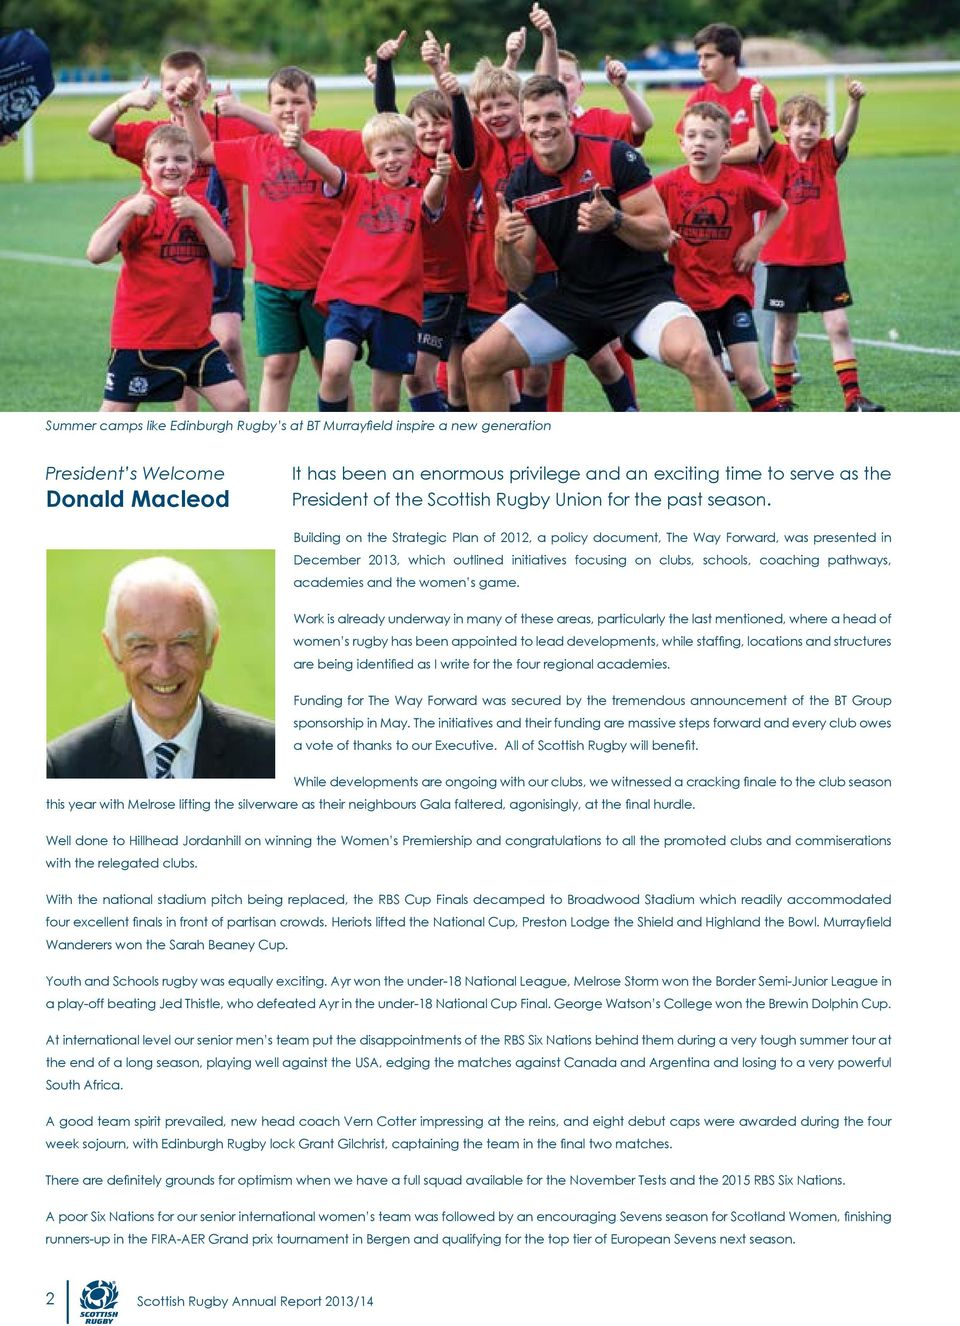 Building on the Strategic Plan of 2012, a policy document, The Way Forward, was presented in December 2013, which outlined initiatives focusing on clubs, schools, coaching pathways, academies and the